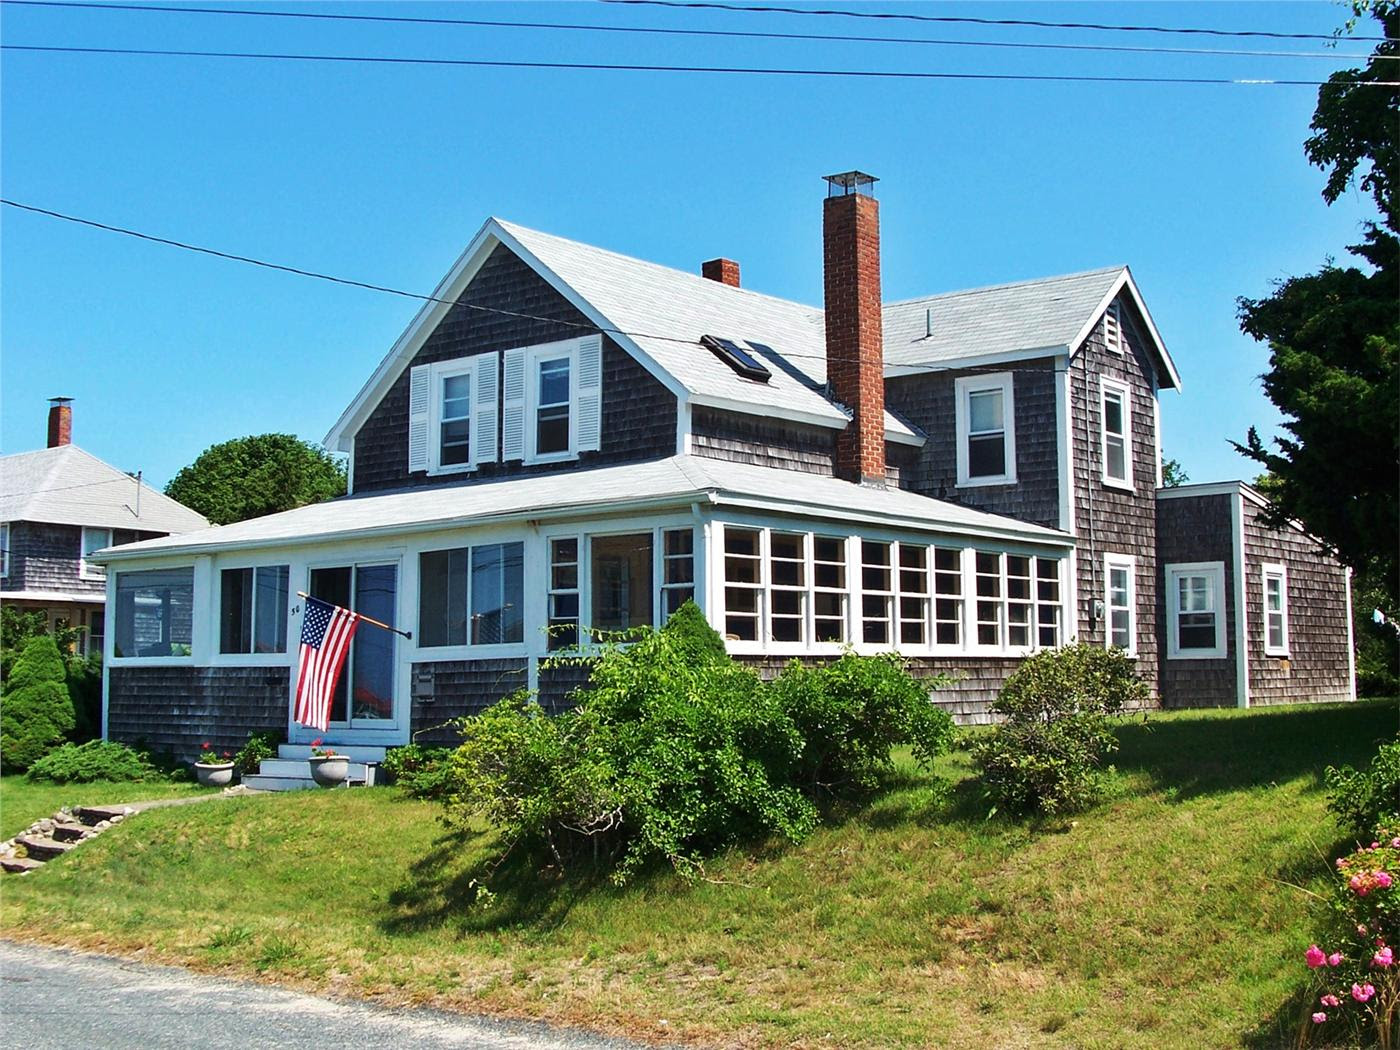 Yarmouth Vacation Rental home in Cape Cod MA 02673 300